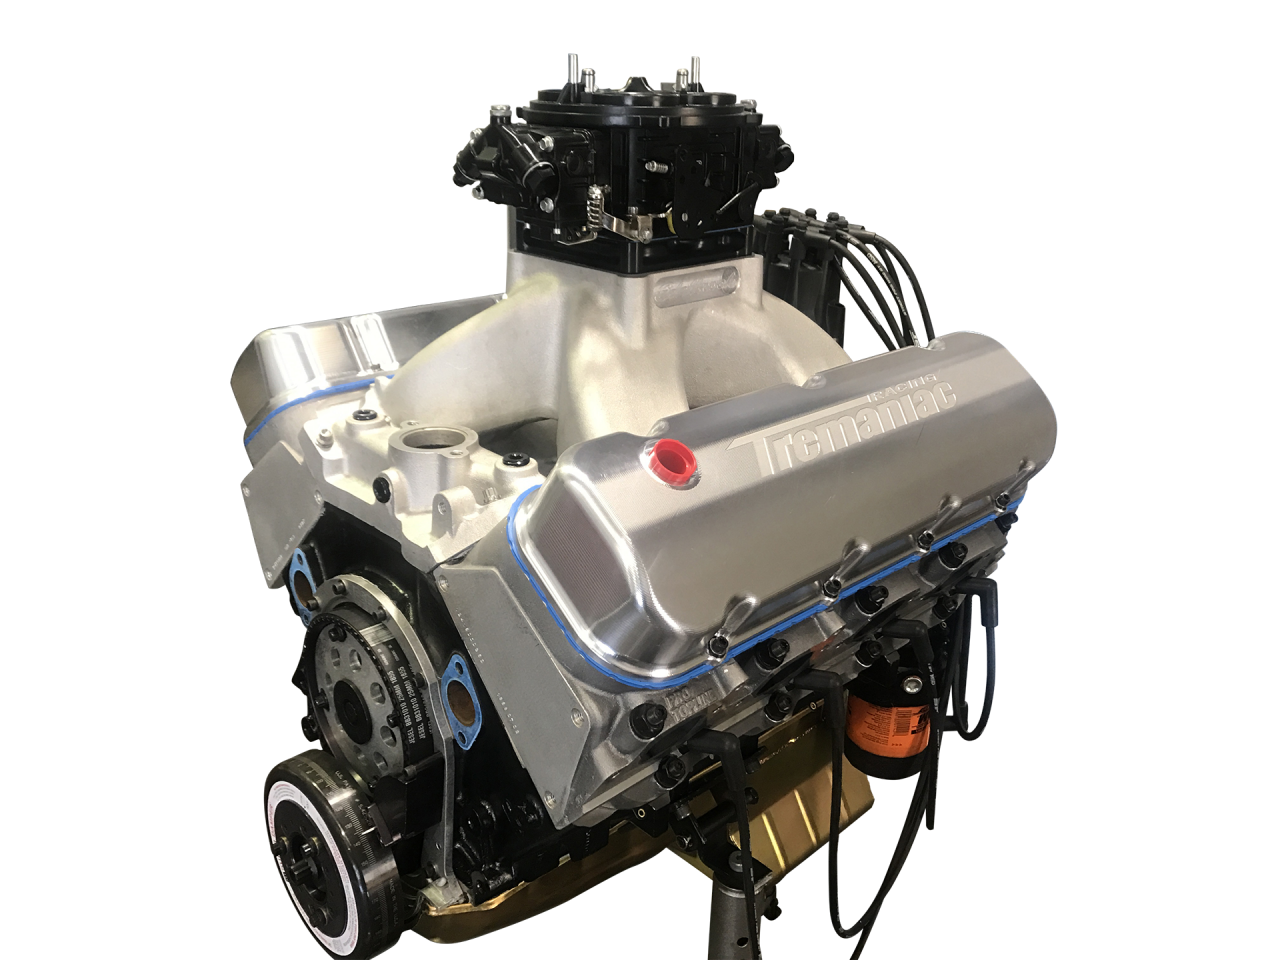 Main BBC 632ci SR20 Race Engine Package (1150hp)